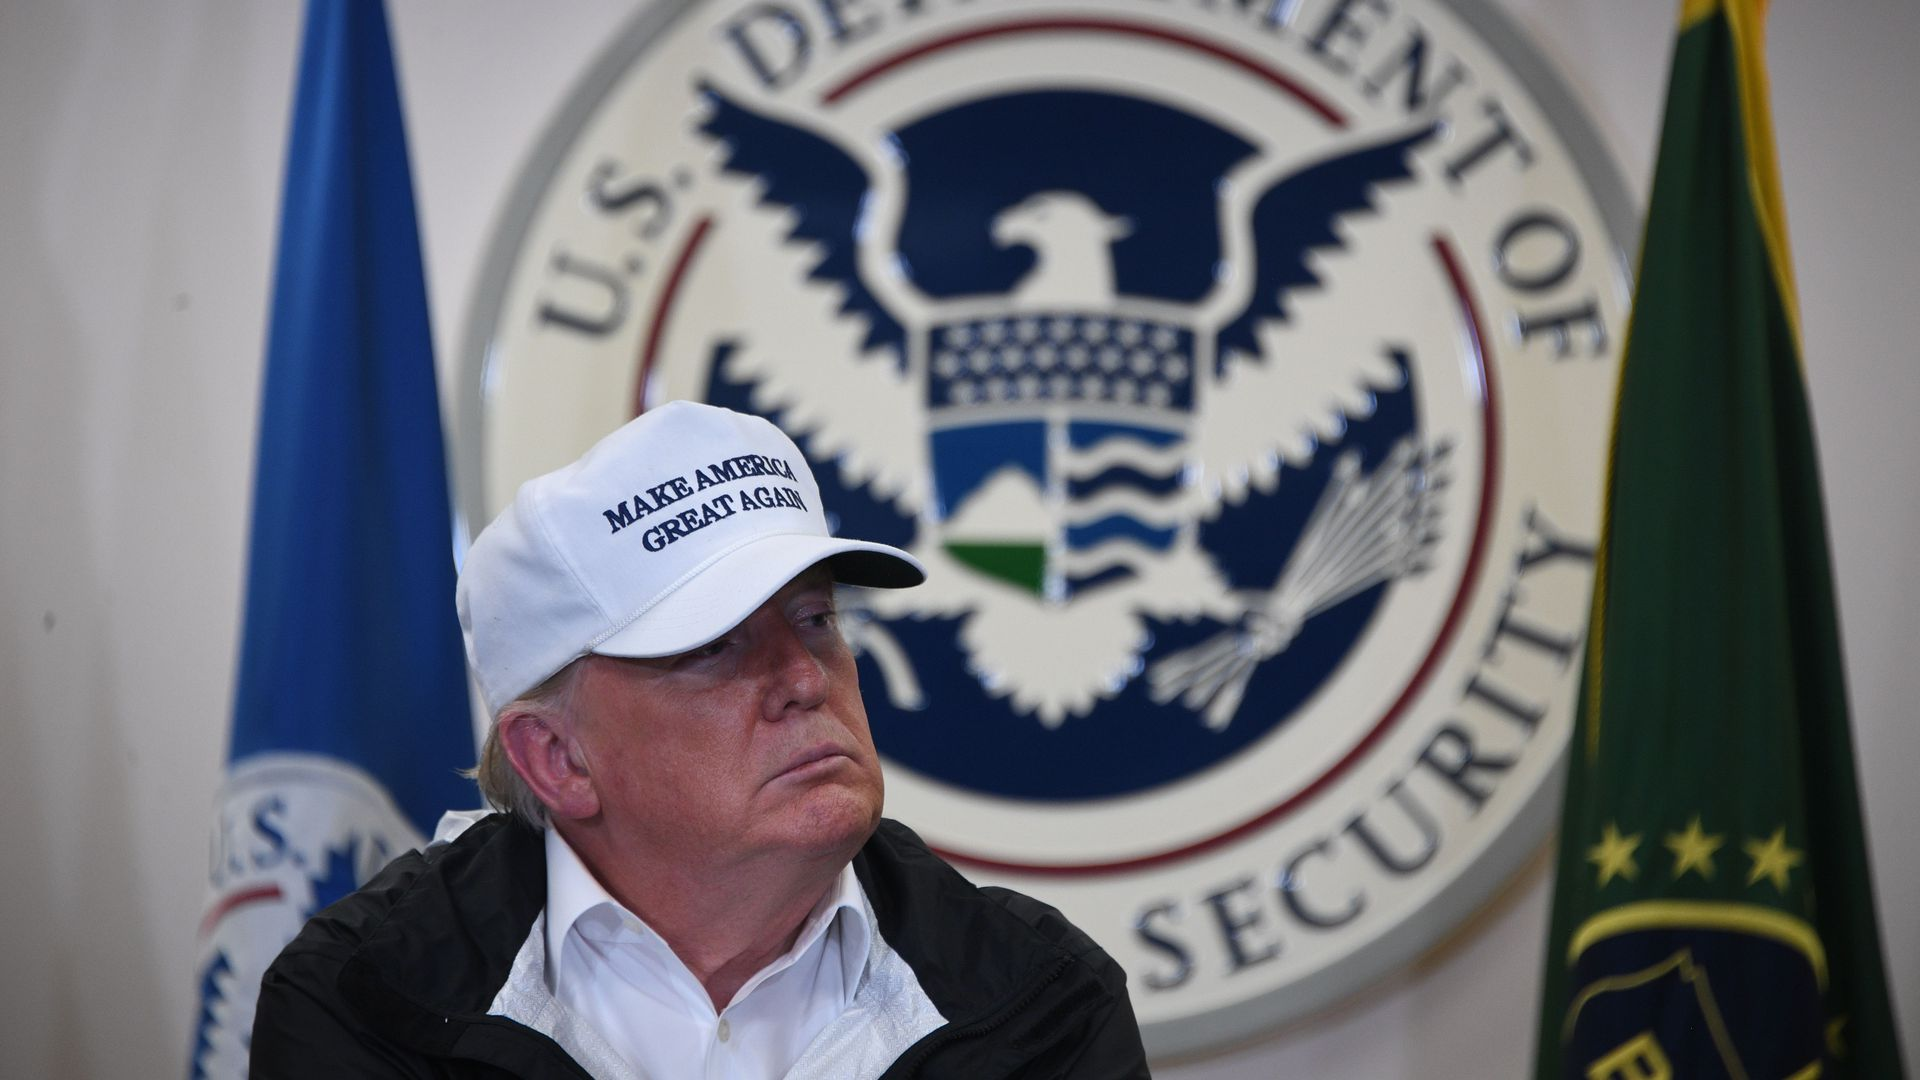 Trump sits with a white MAGA hat on in front of the logo for the US Department of Homeland Security